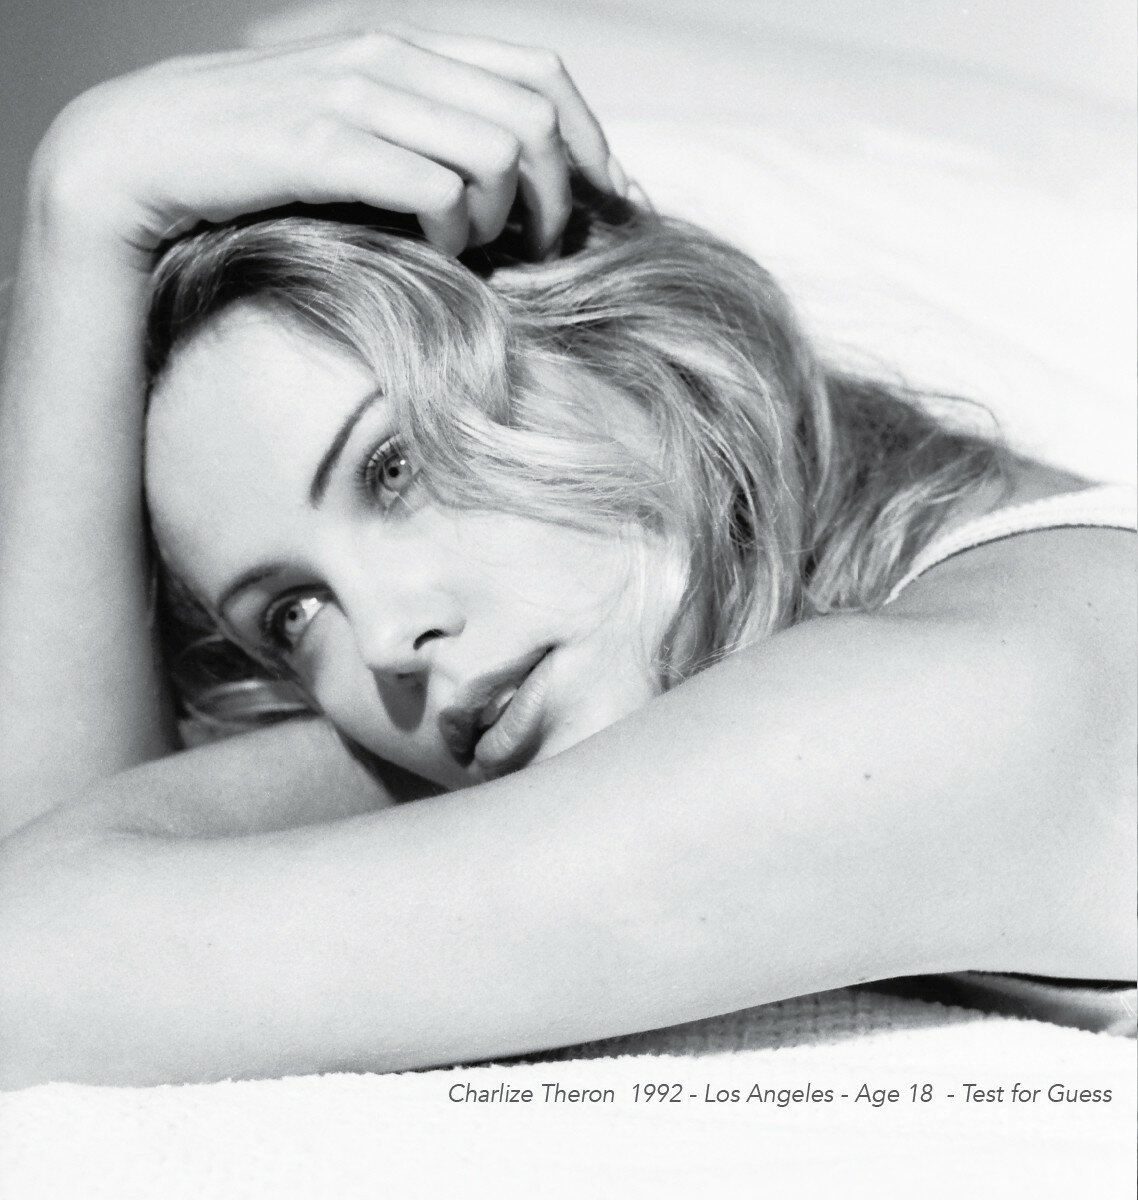 Portraits of 18 year old Charlize Theron for a Guess Jeans test. Taken in Topanga Canyon in 1992 by Mark Humphrey.